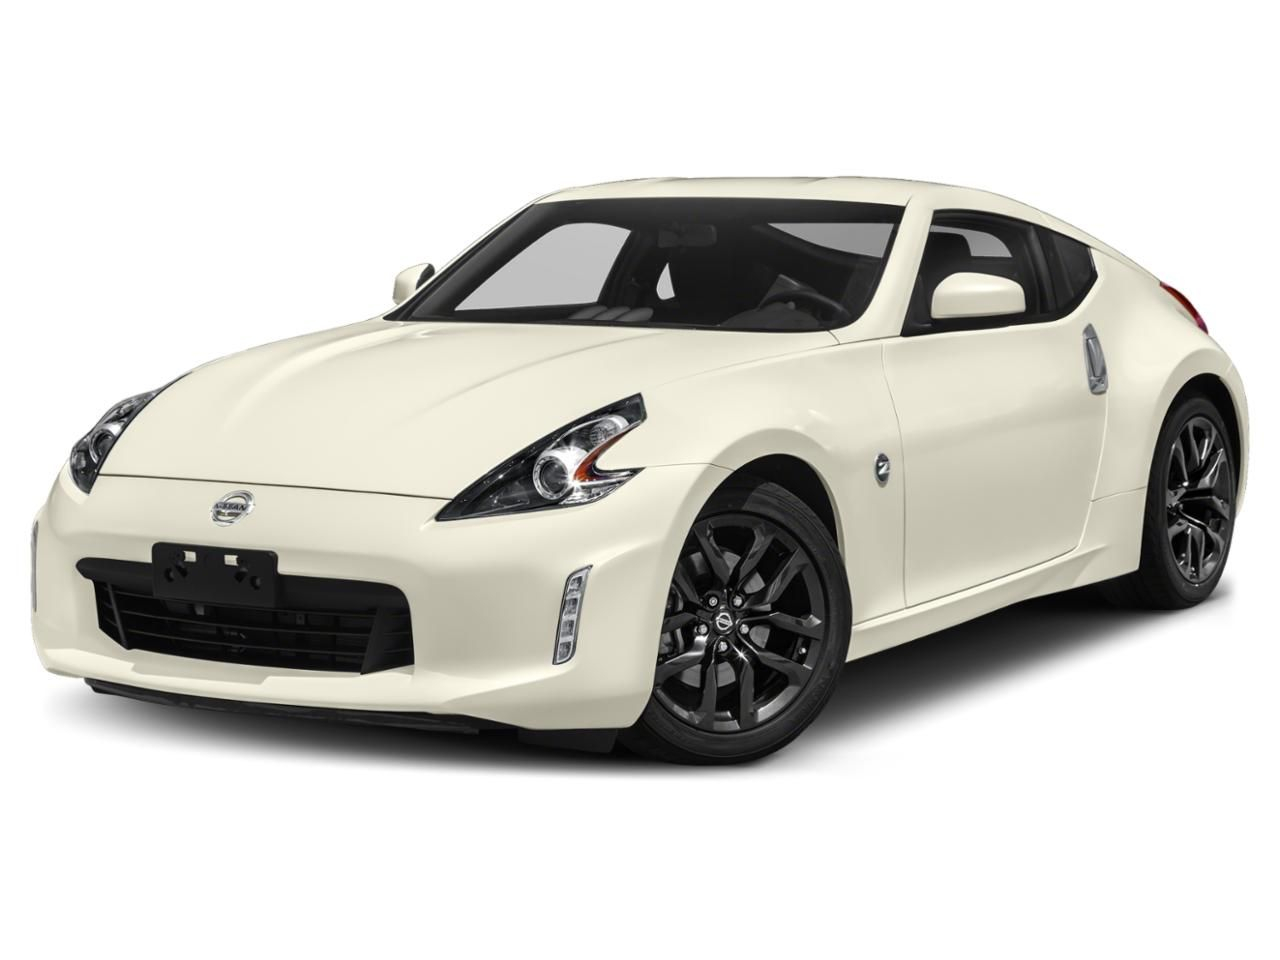 Nissan 370Z Sport 50TH ANNIVERSARY EDITION COUPE Inventory Image